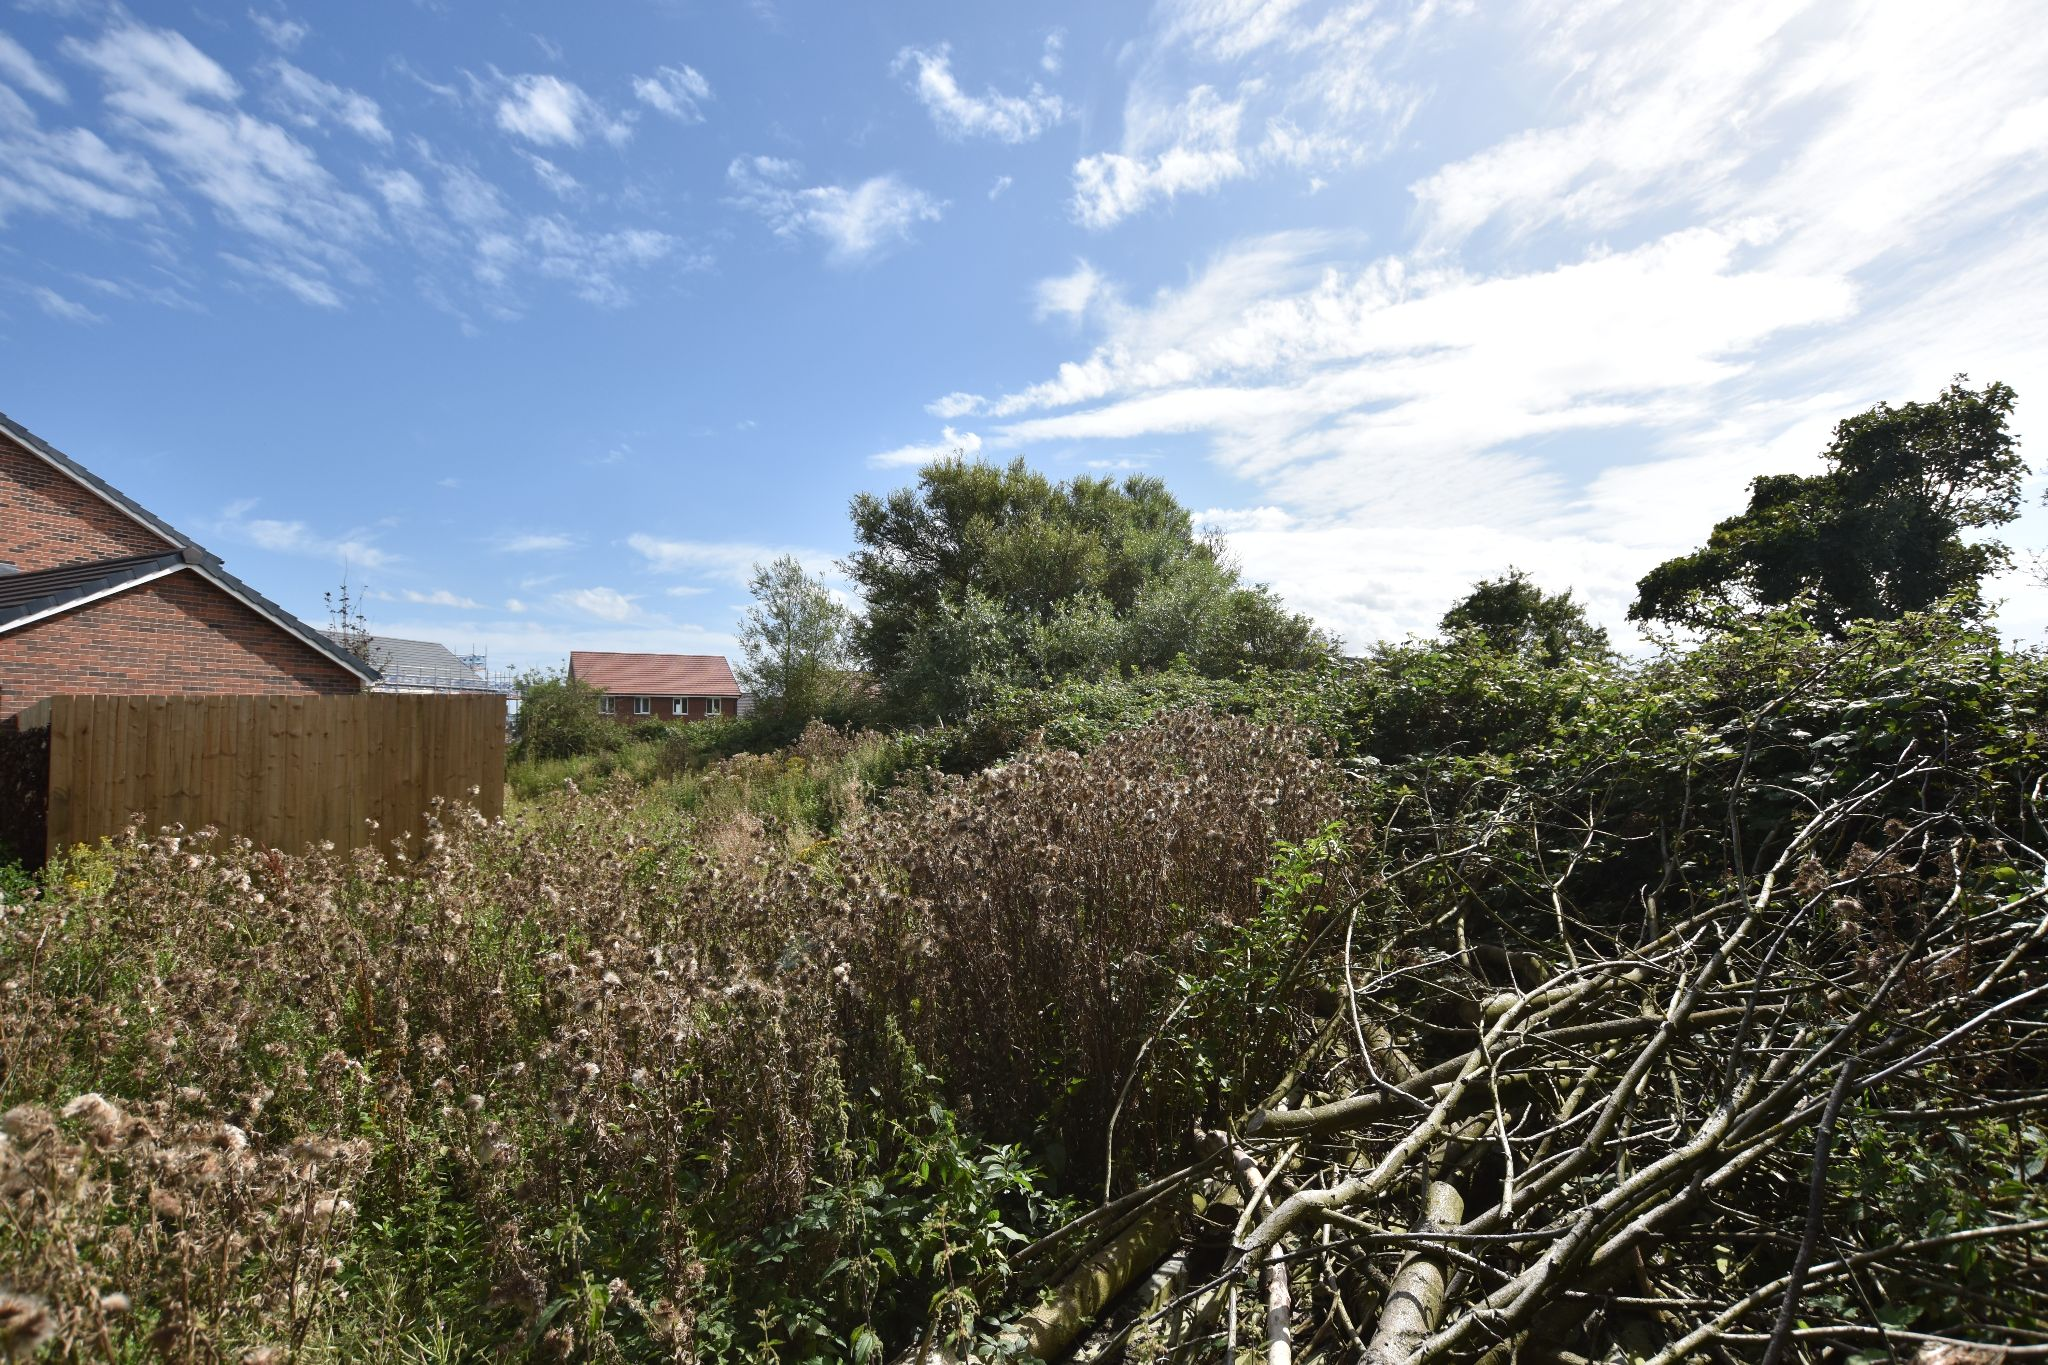 plot land For Sale in Warton - Sykes Hall